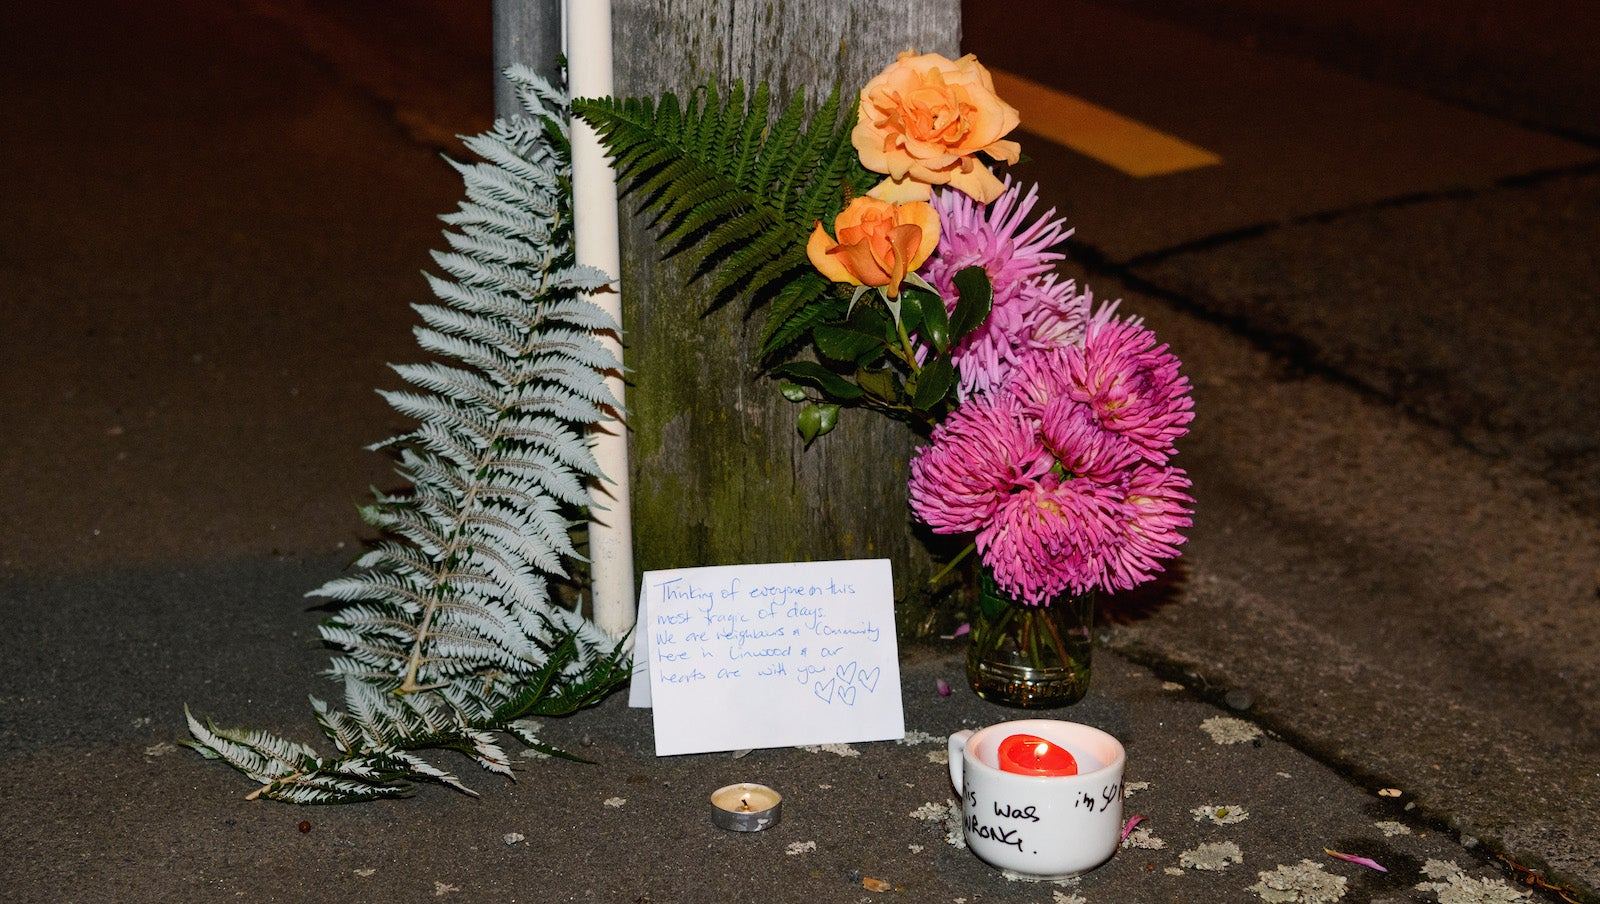 Where To Donate To Help The Victims Of The Christchurch Shootings